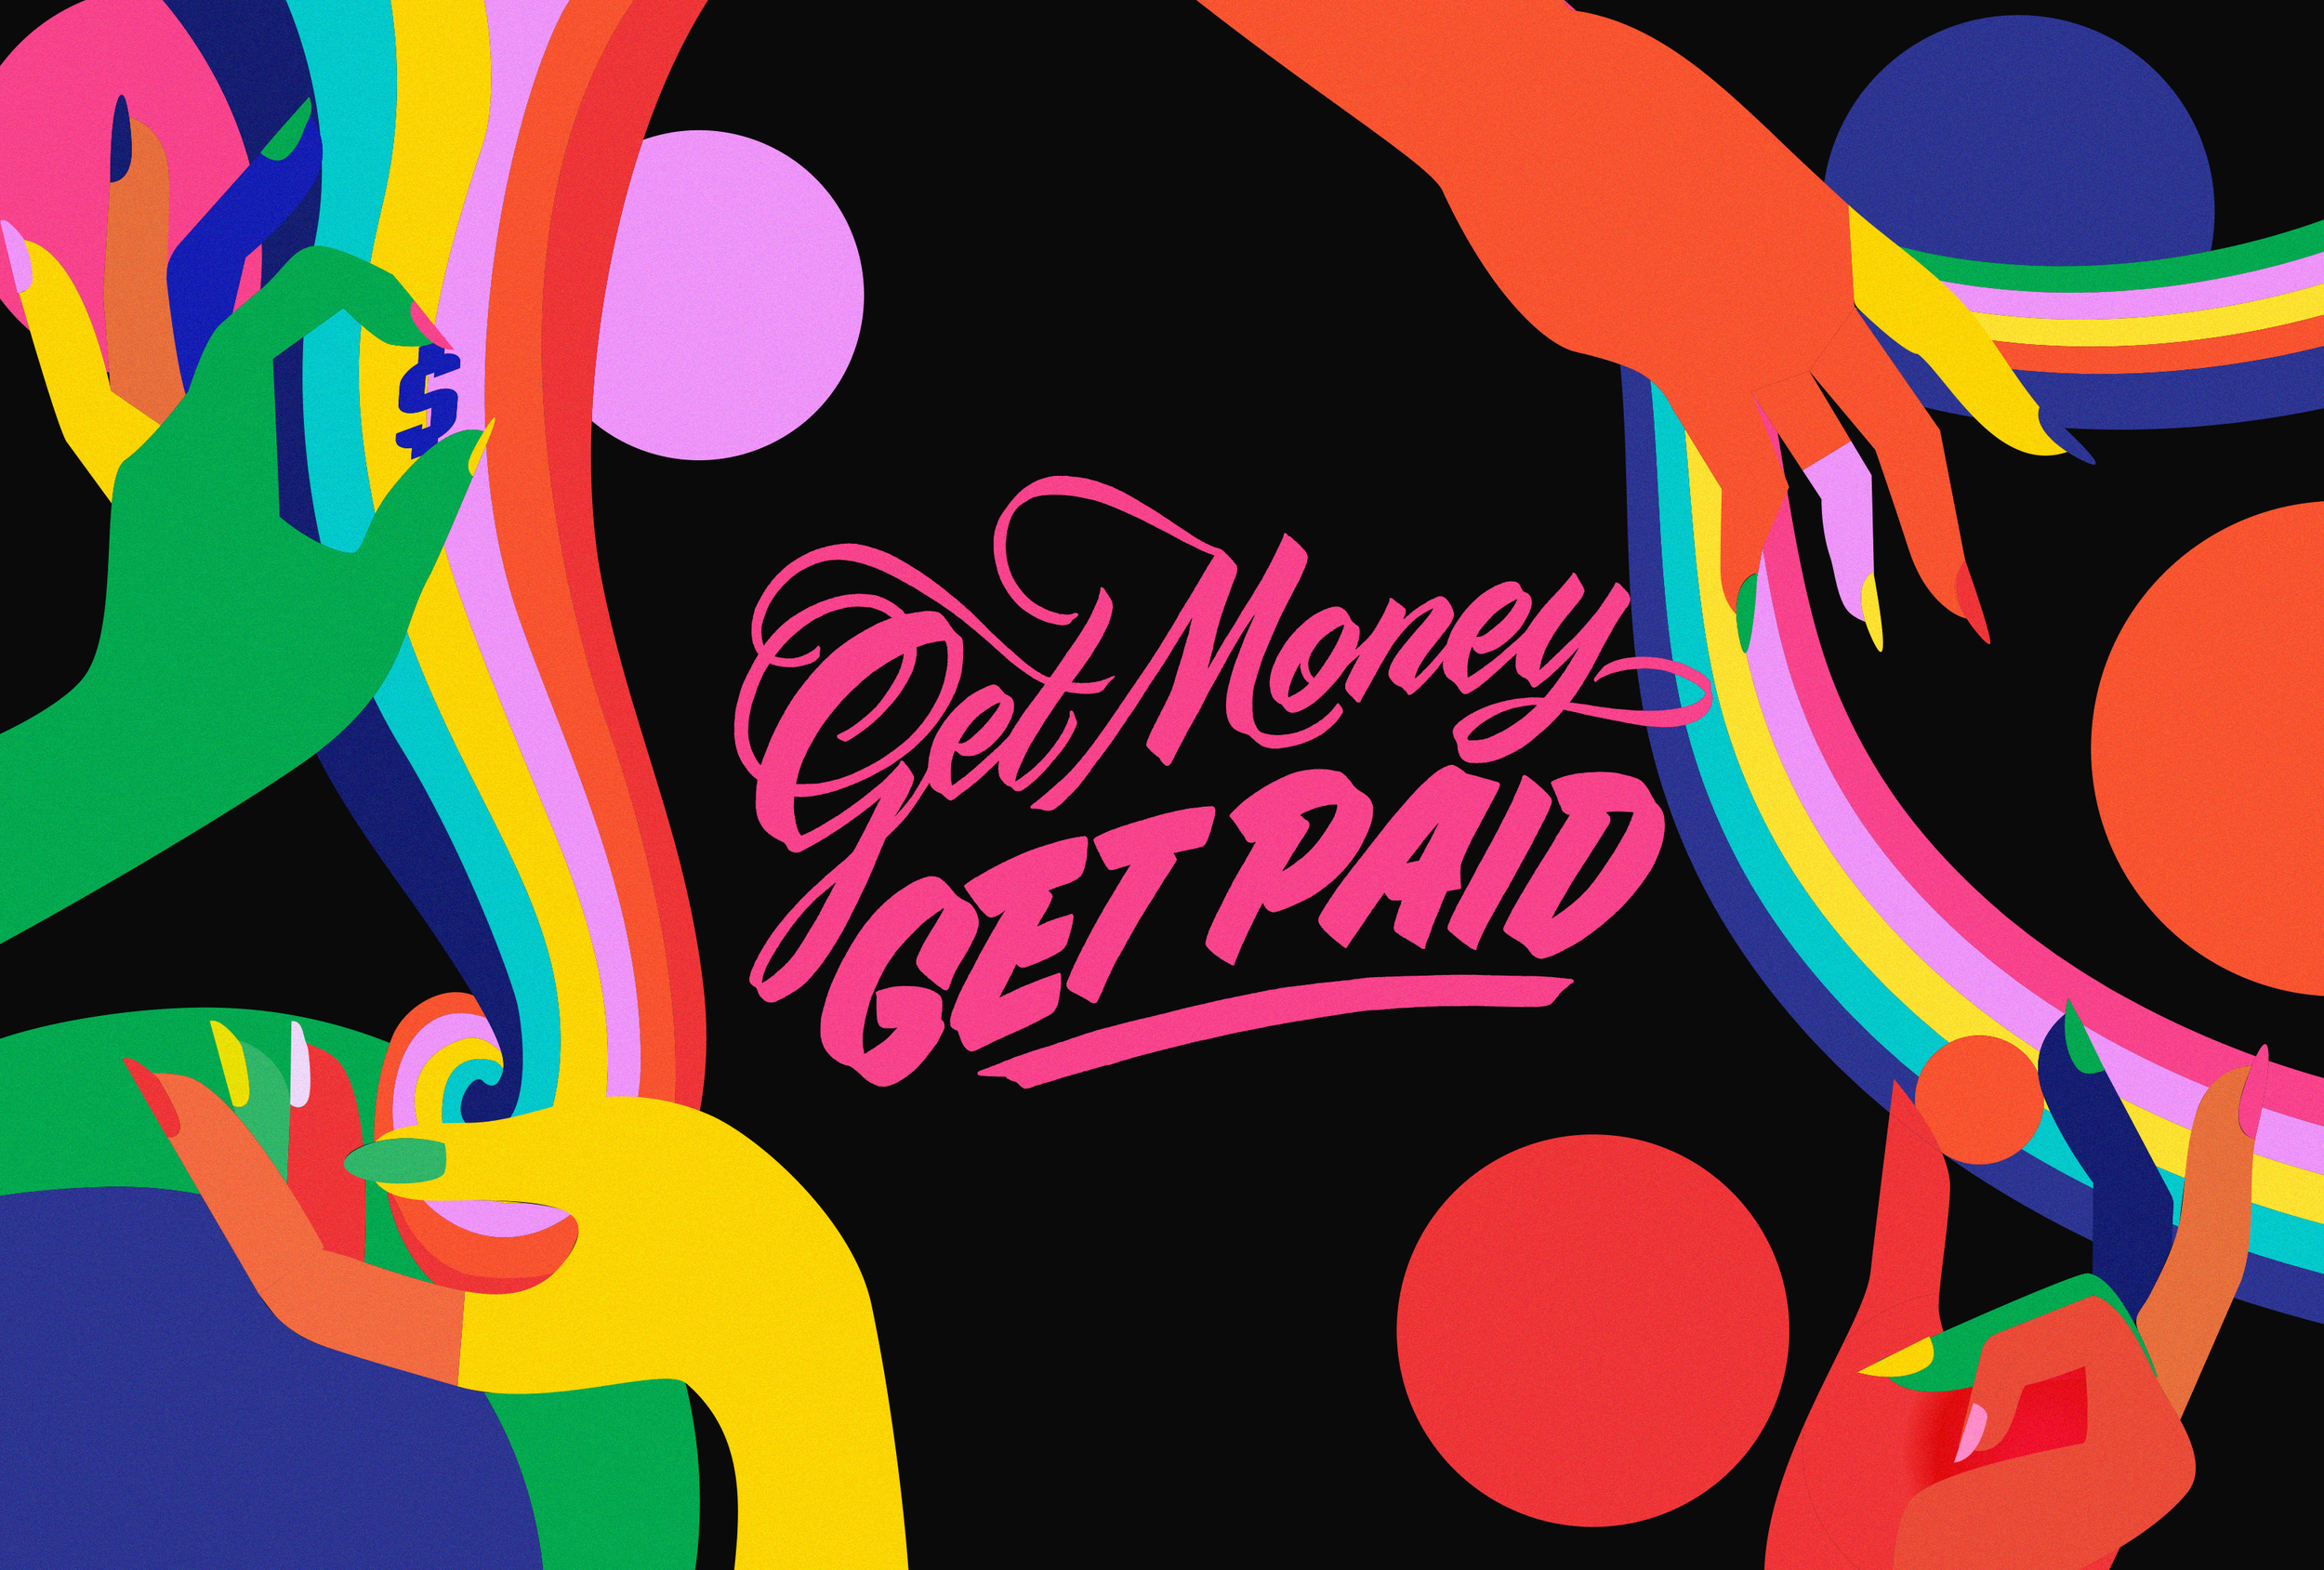 Get Money Get Paid Conference      Get Money Get Paid   is a 1-day experience in Brooklyn, NY dedicated to helping women rise up at work. Dr. Cadet is thrilled to be one of the speakers for a company she loves to work with and support,   Ladies Get Paid   (join the network if you have yet to do so) that provides women with the tools and network to be their best selves at work!   Tickets   available now!